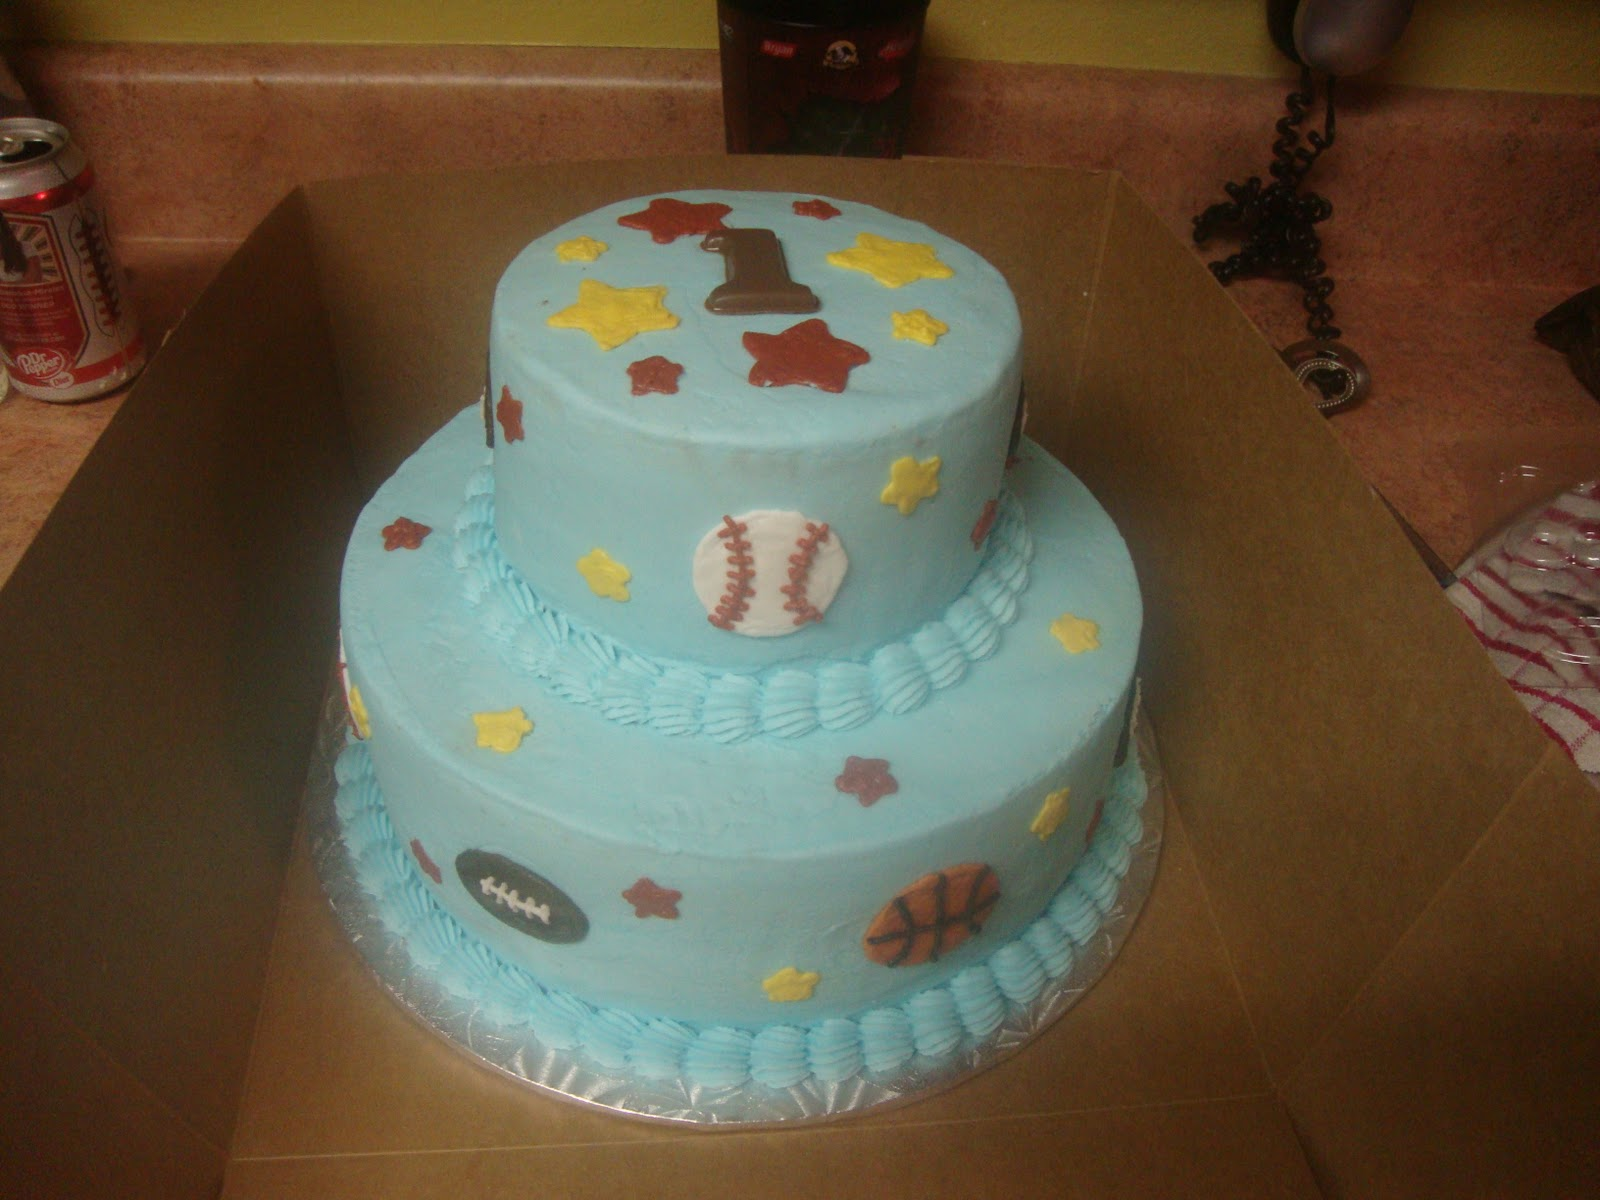 Birthday Cake Pic For A Boy : Charity s Sunshine Sweets: BABY BOY S 1ST BIRTHDAY CAKE